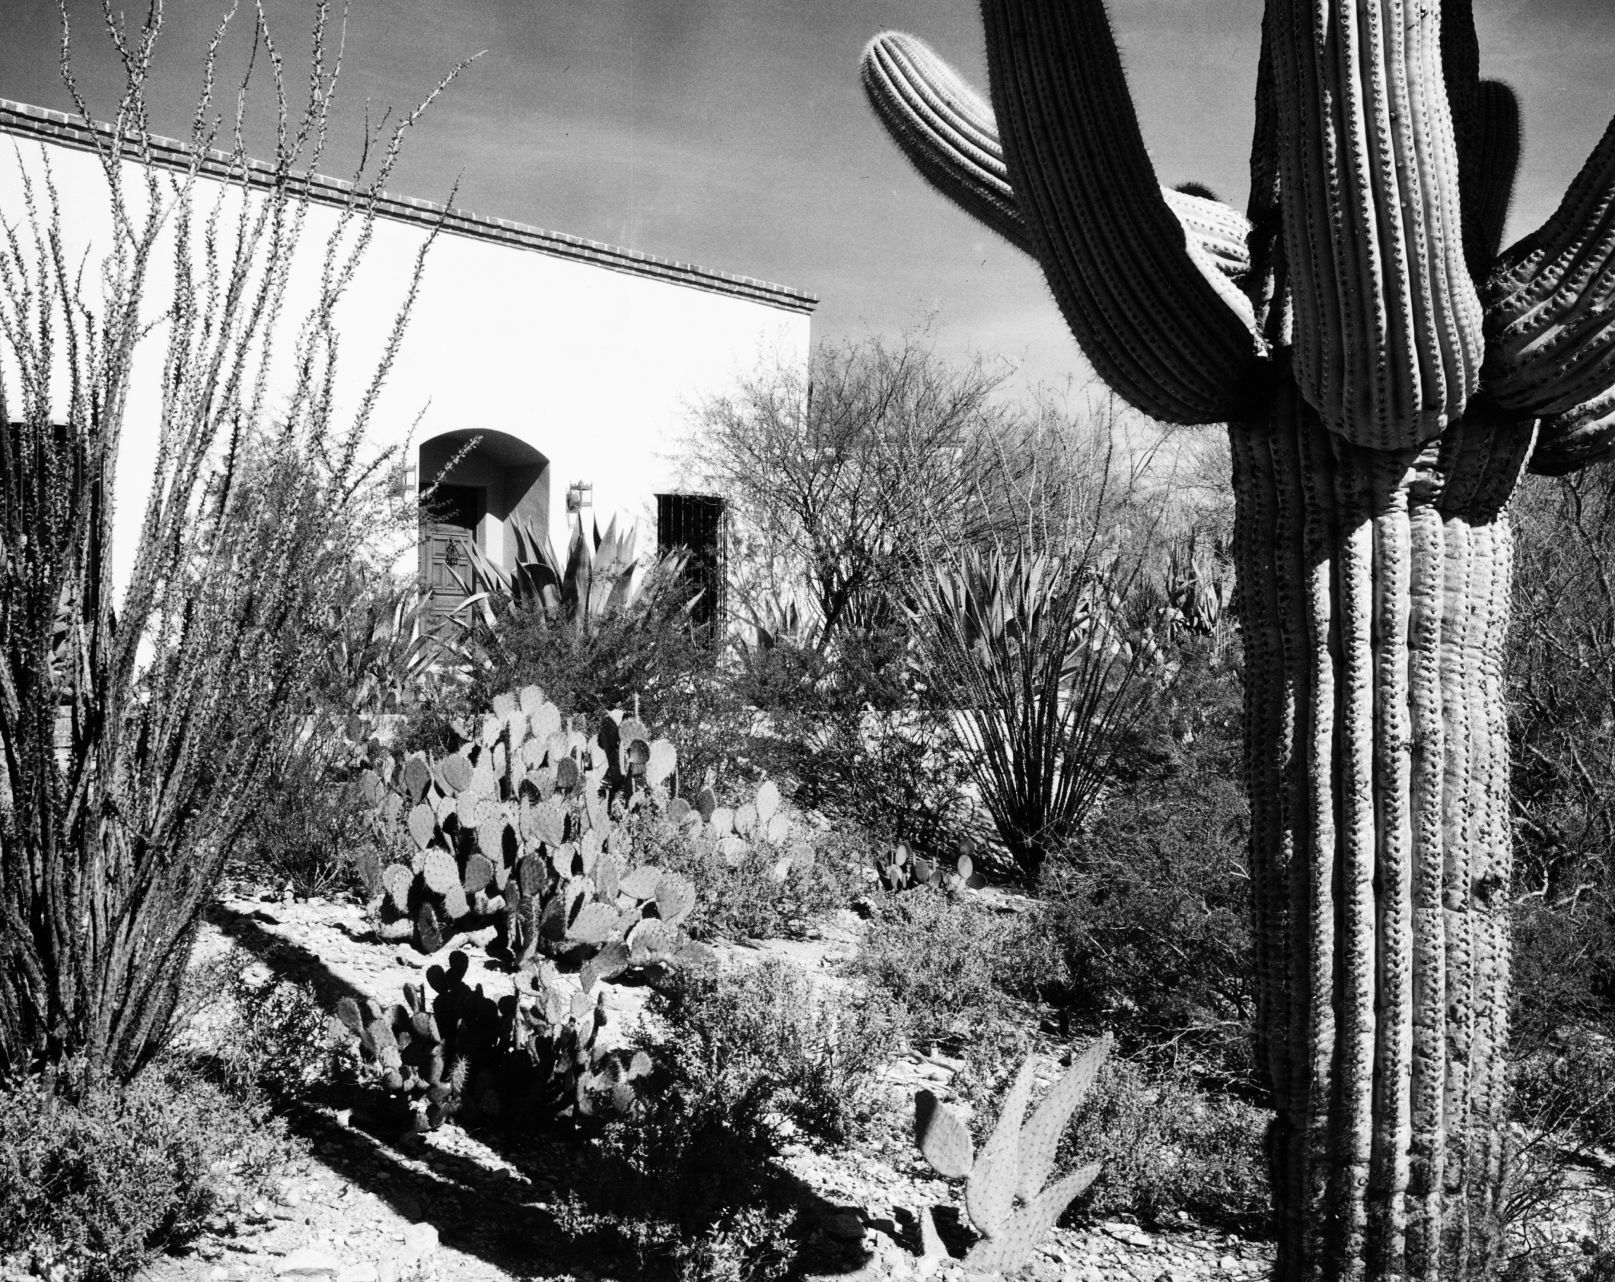 Harlow Gardens Gets A Look At Its Early Work In Tucson | Home U0026 Garden |  Tucson.com